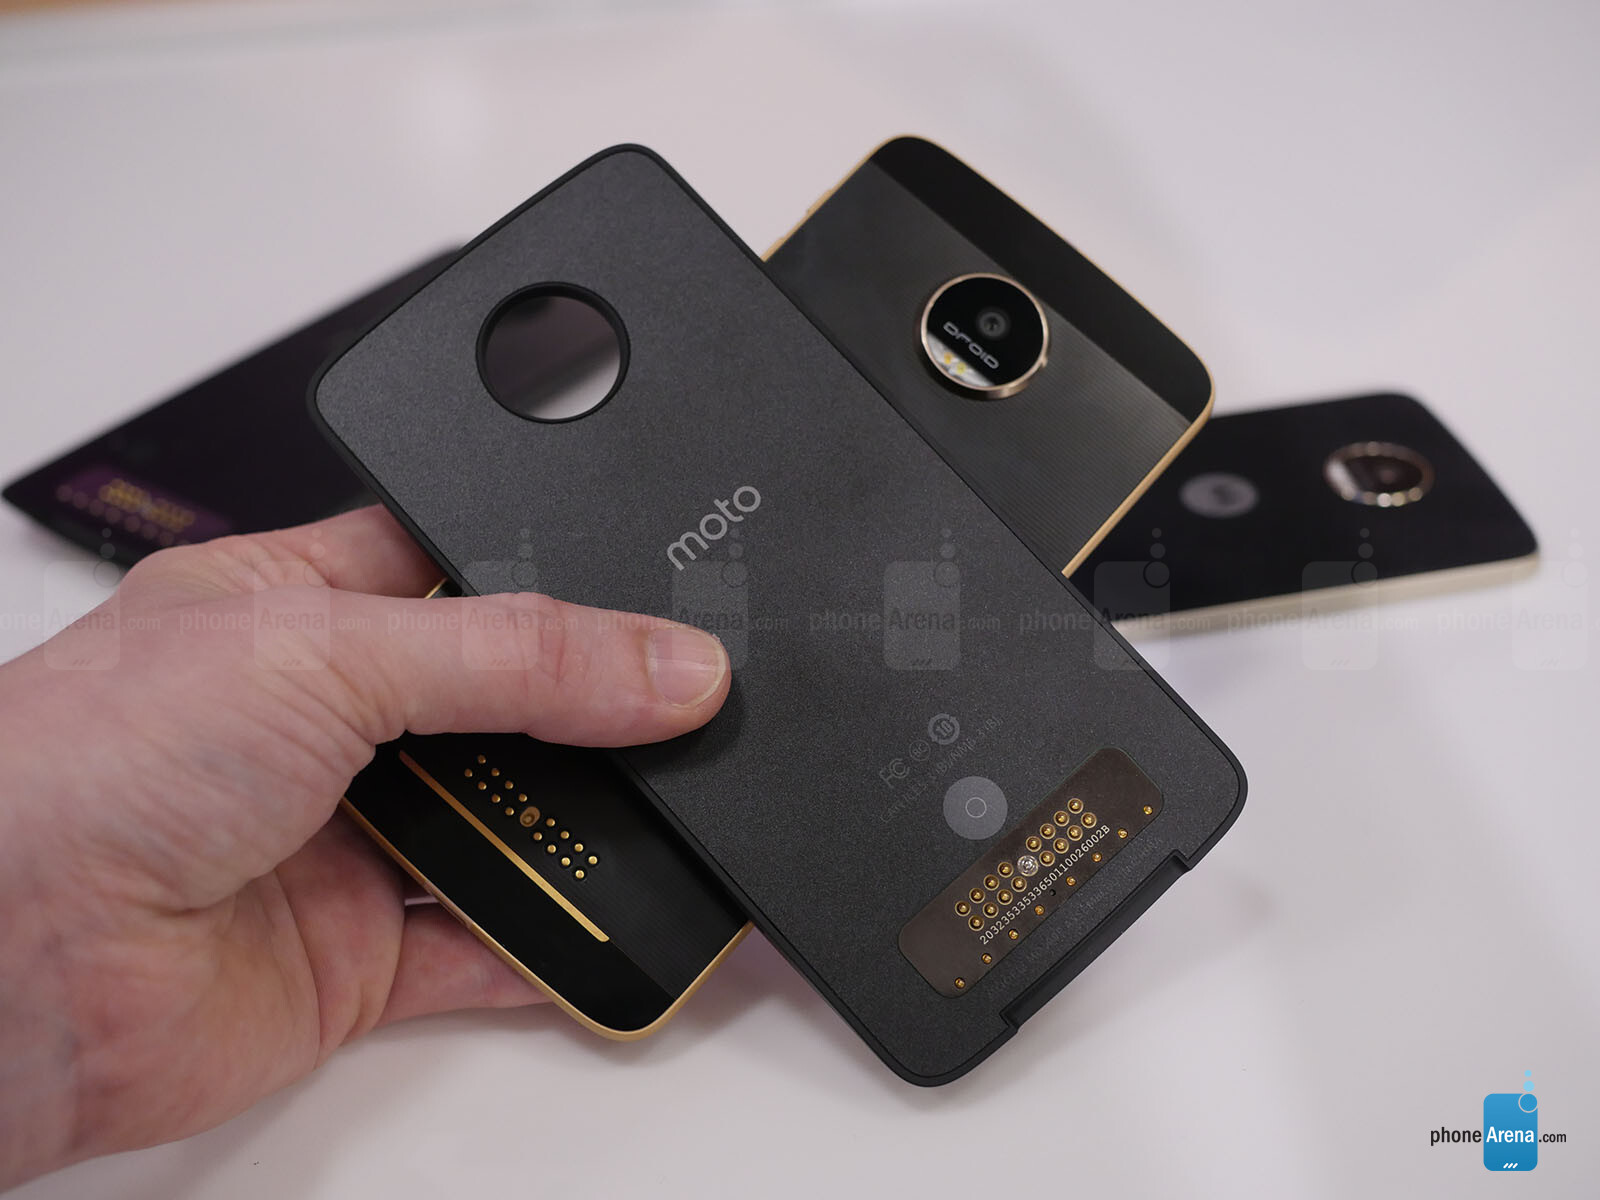 Moto Z Droid, Moto Z Force Droid, and Moto Mods hands-on ...